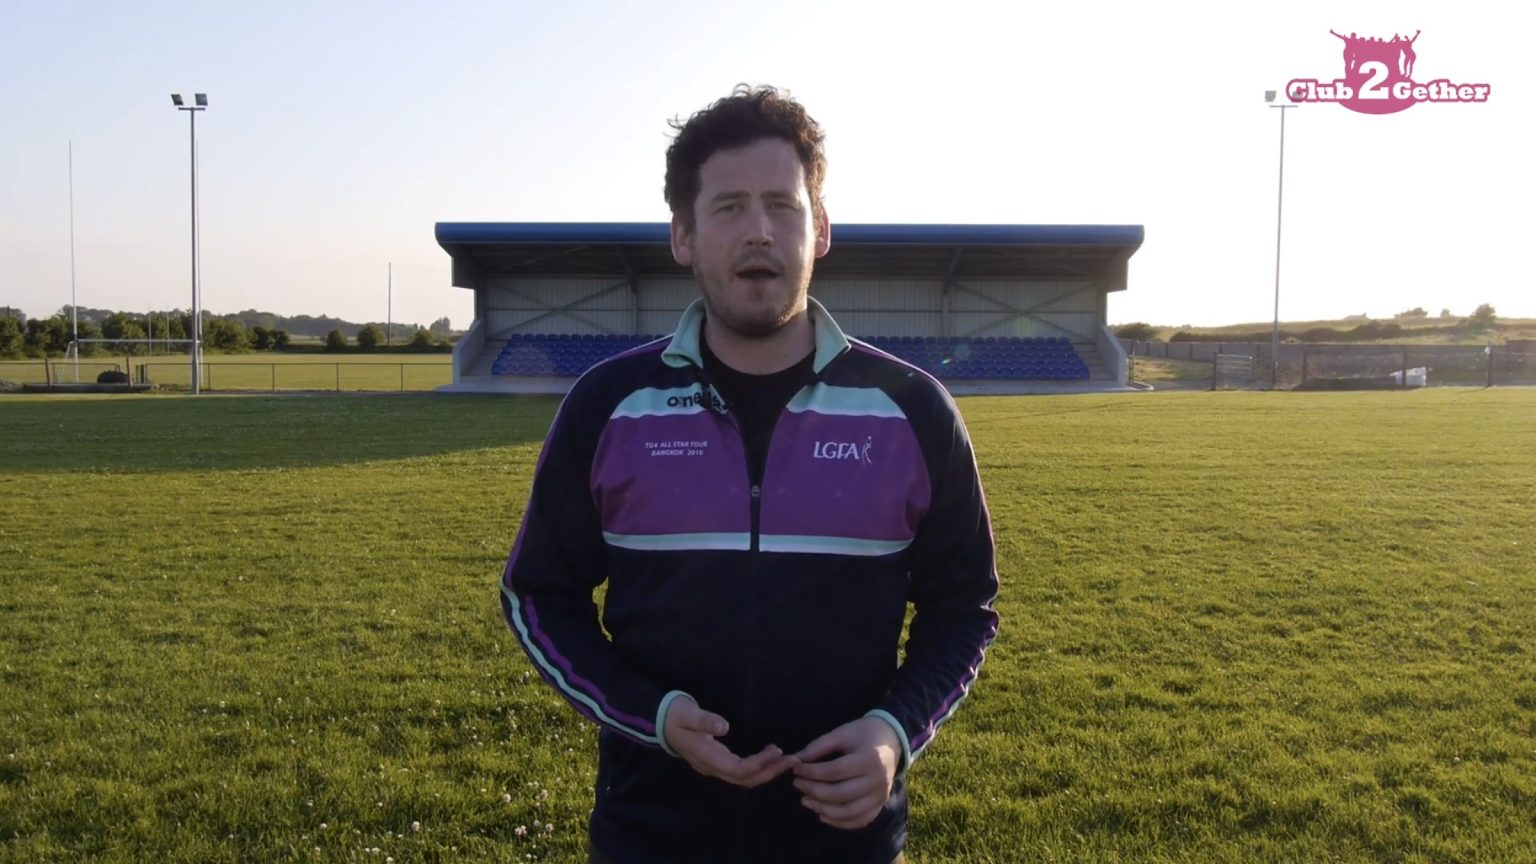 LGFA Office In navy half zip top with purple panel on chest on a pitch with small stand behind him explains the LGFA Club2Gether Programme